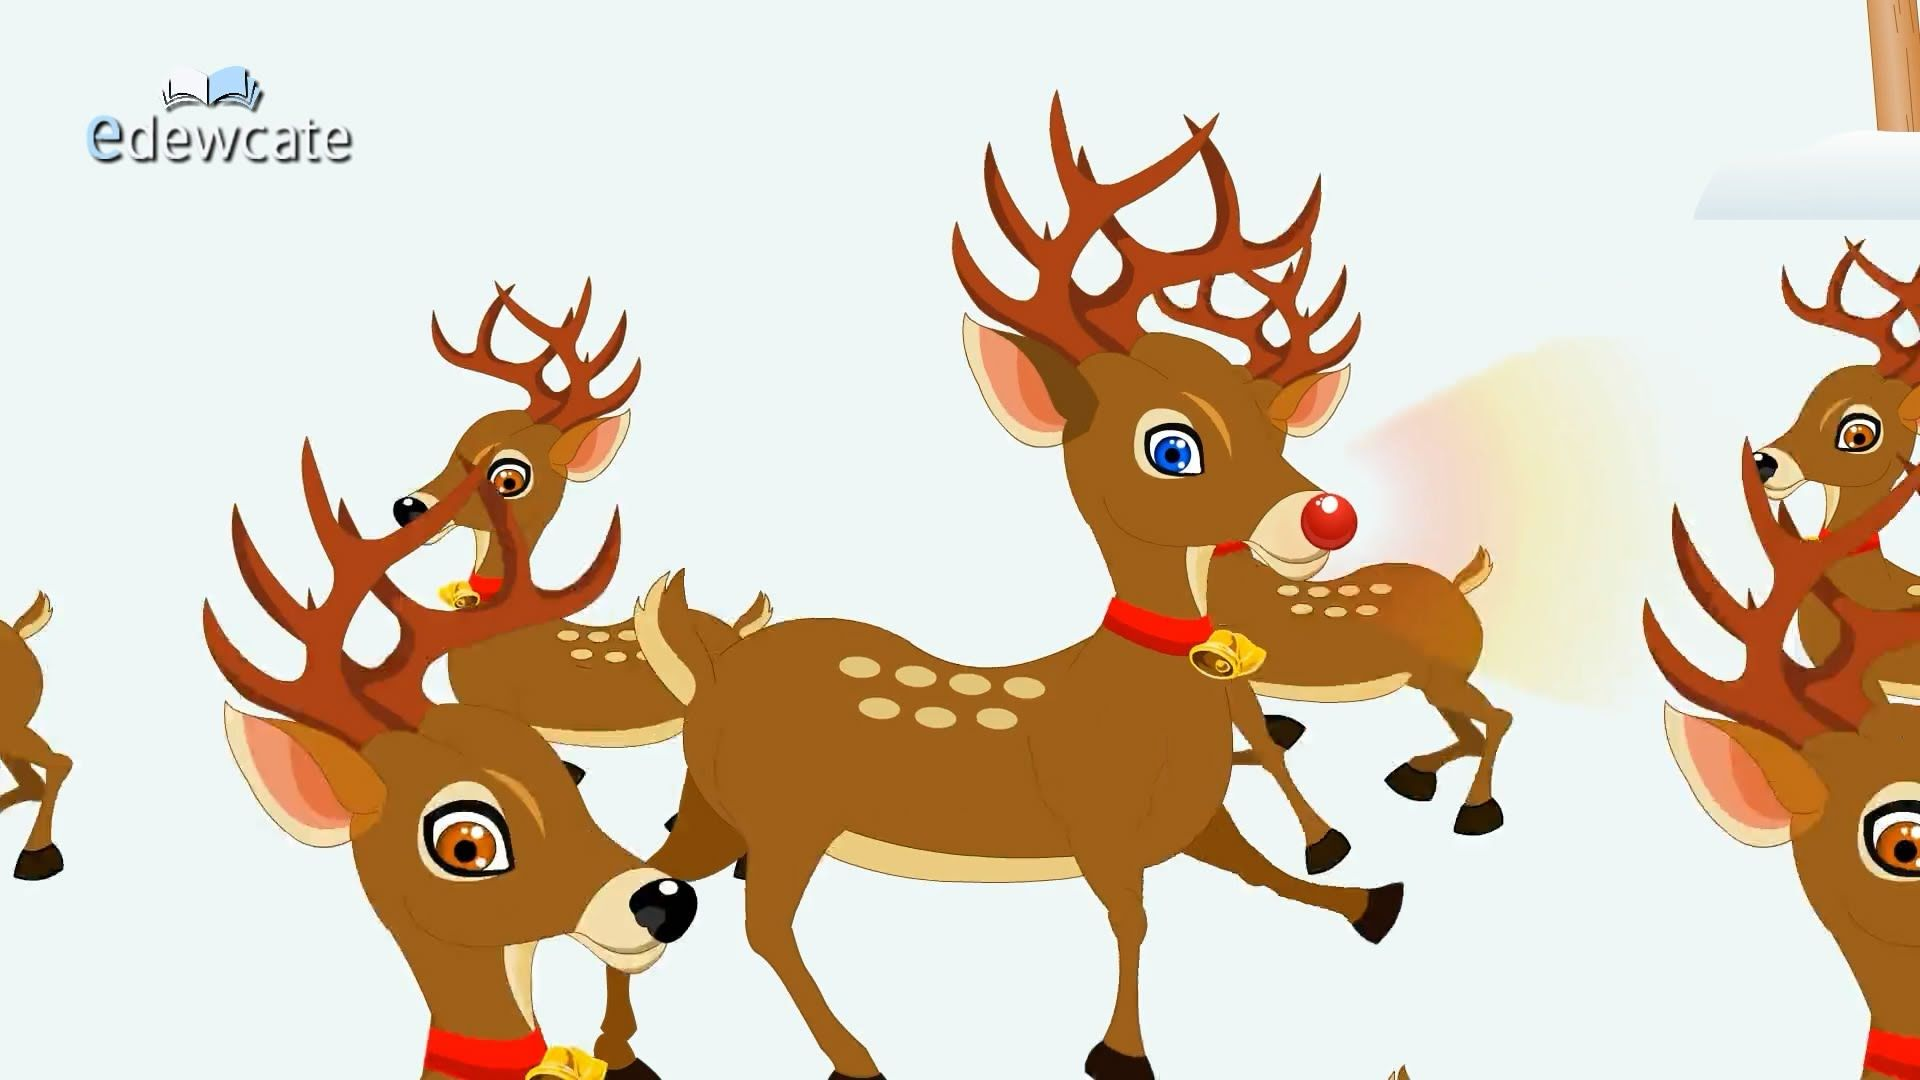 Rudolph the RedNosed Reindeer popularly known as Santas ninth reindeer is a fabled reindeer created by Robert Lewis May Rudolph is usually depicted as the lead